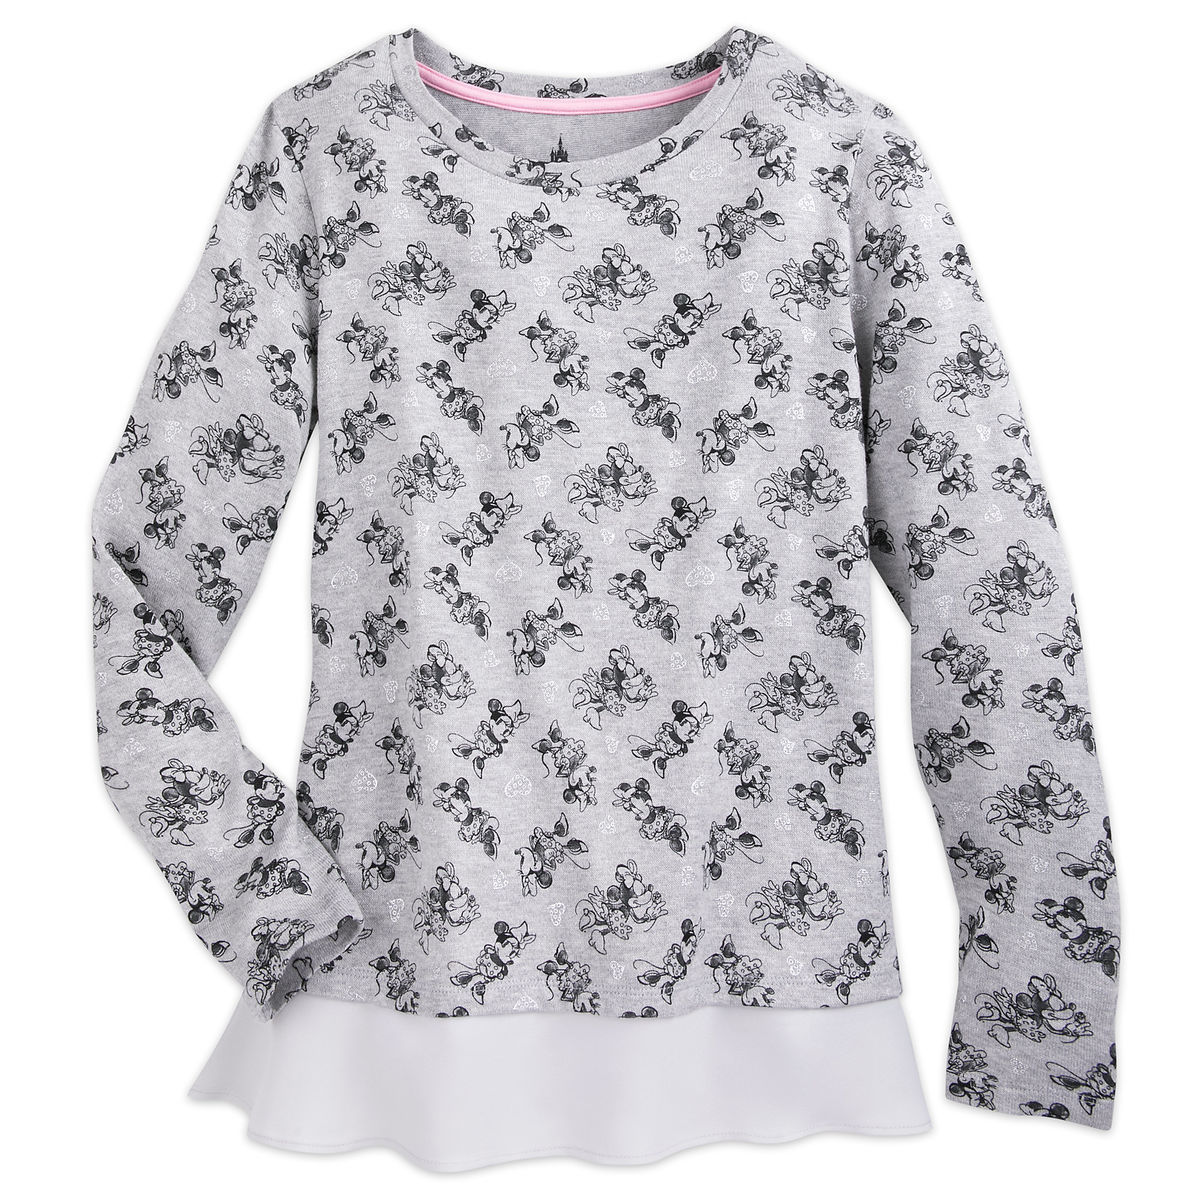 Product Image of Sweet Minnie Mouse Layered Sweatshirt for Women   1 1b353ef87